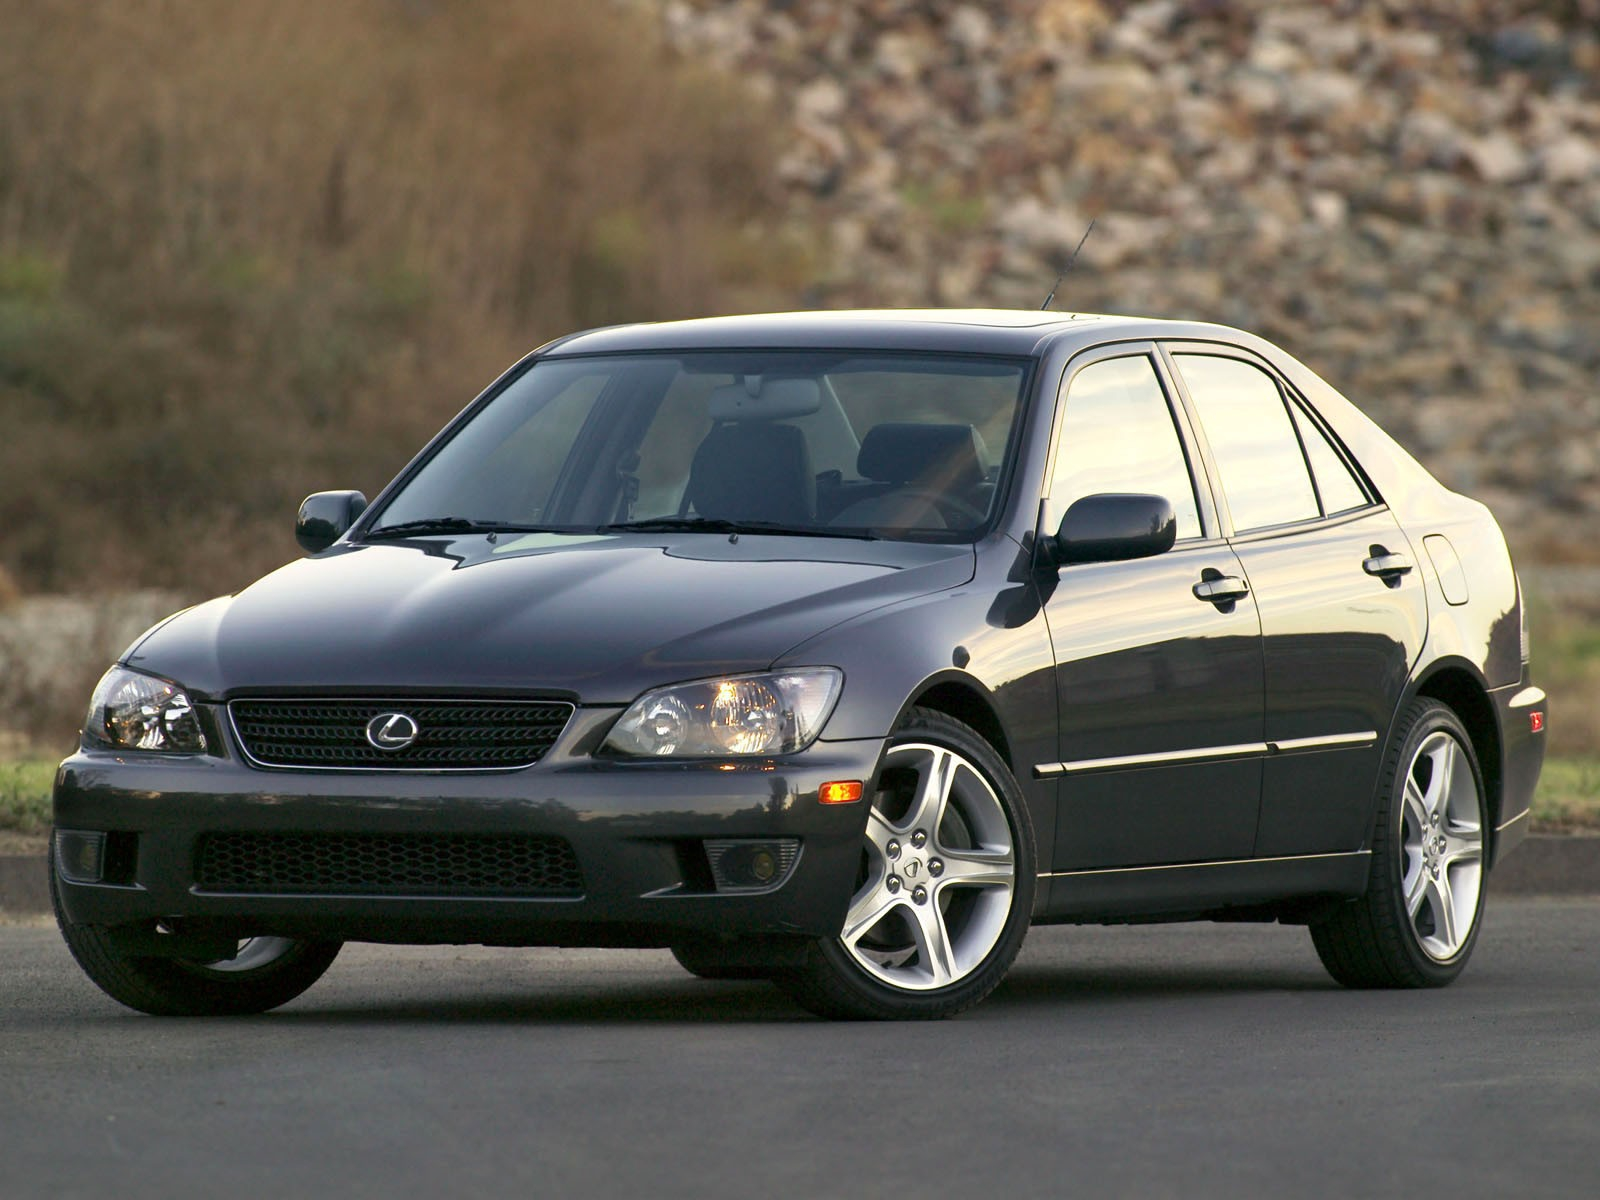 IS300 / Altezza 98-05